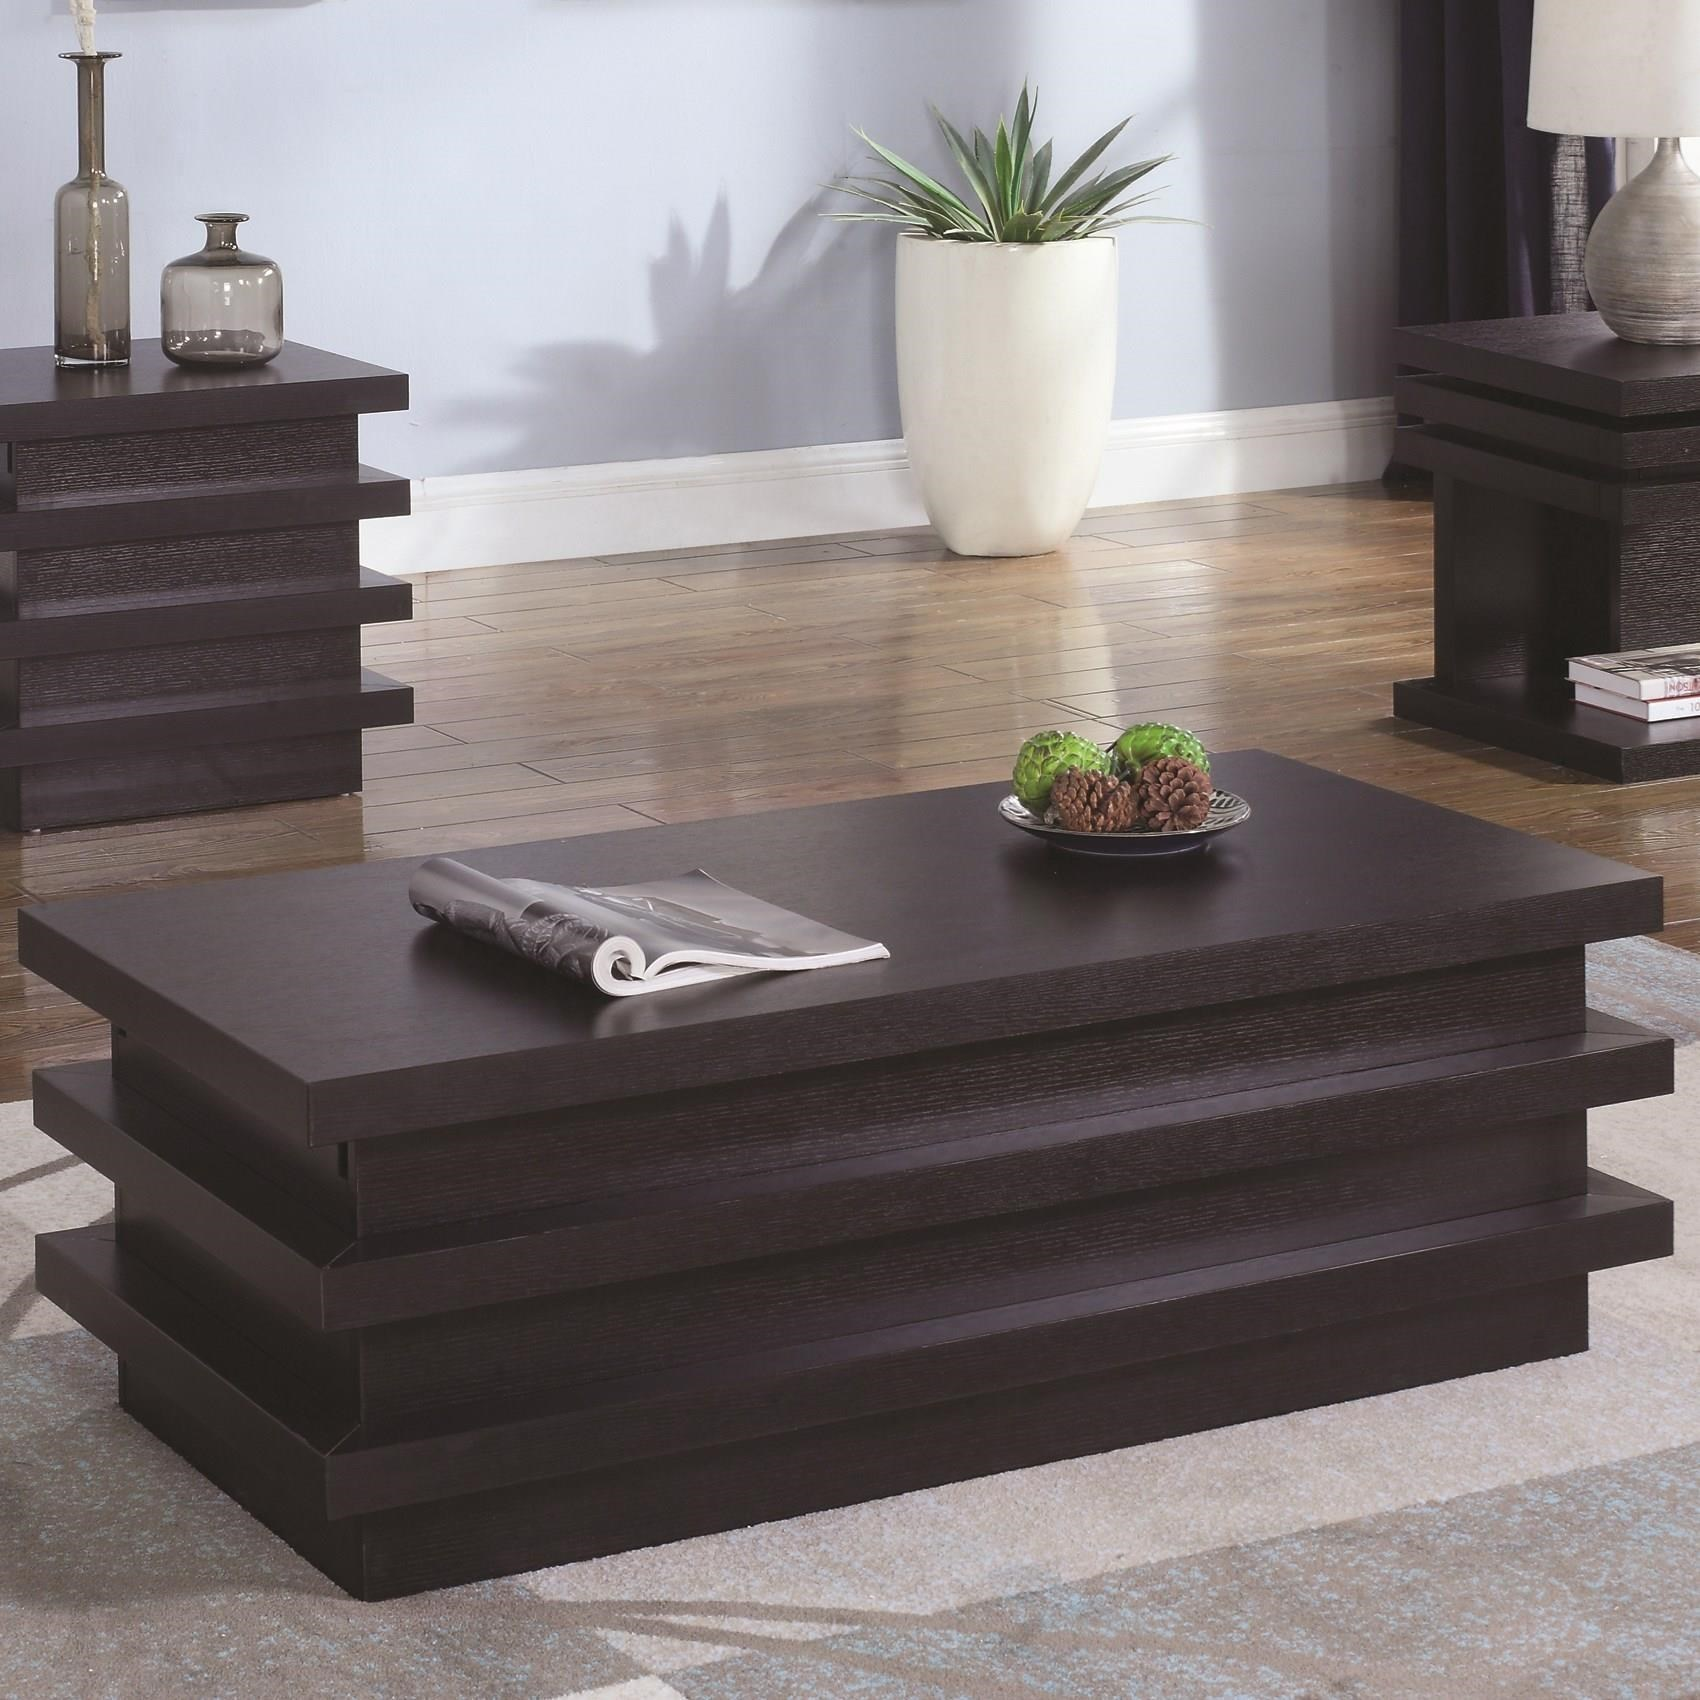 coaster fine furniture cappuccino rectangular console and sofa table best pillows for brown leather florence coffee dallas tx